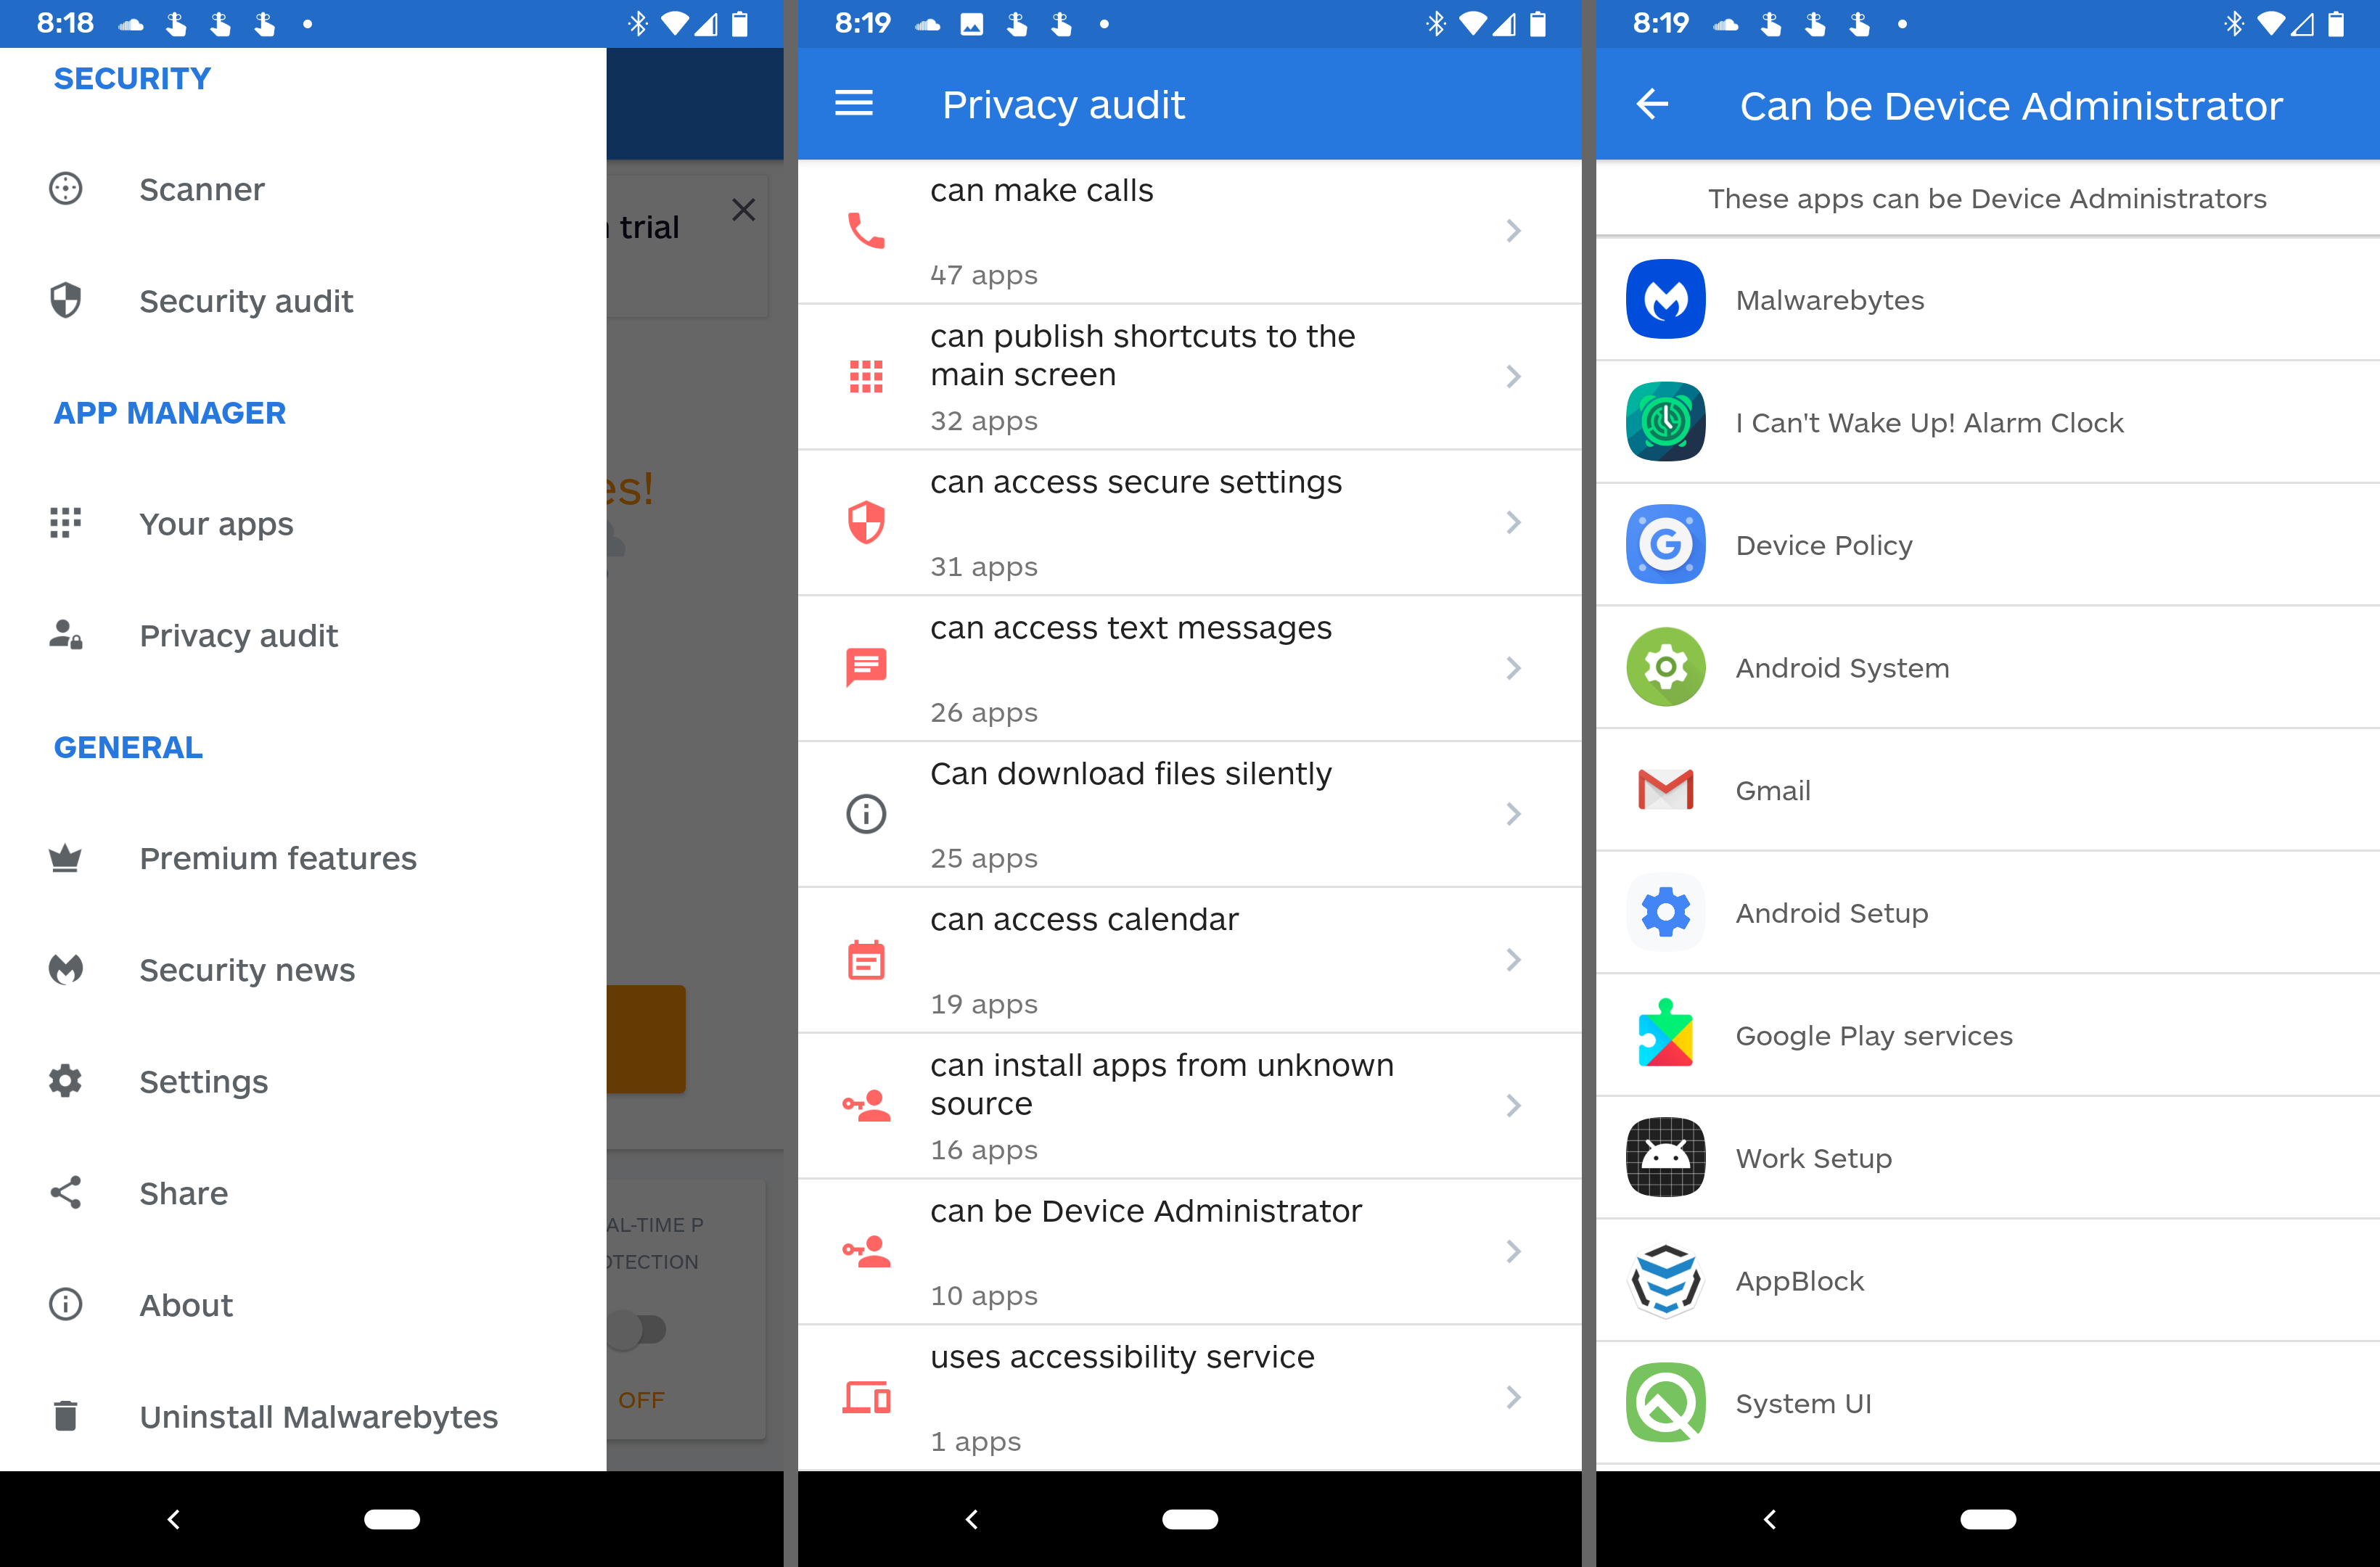 Android admin apps listed in Malwarebytes app